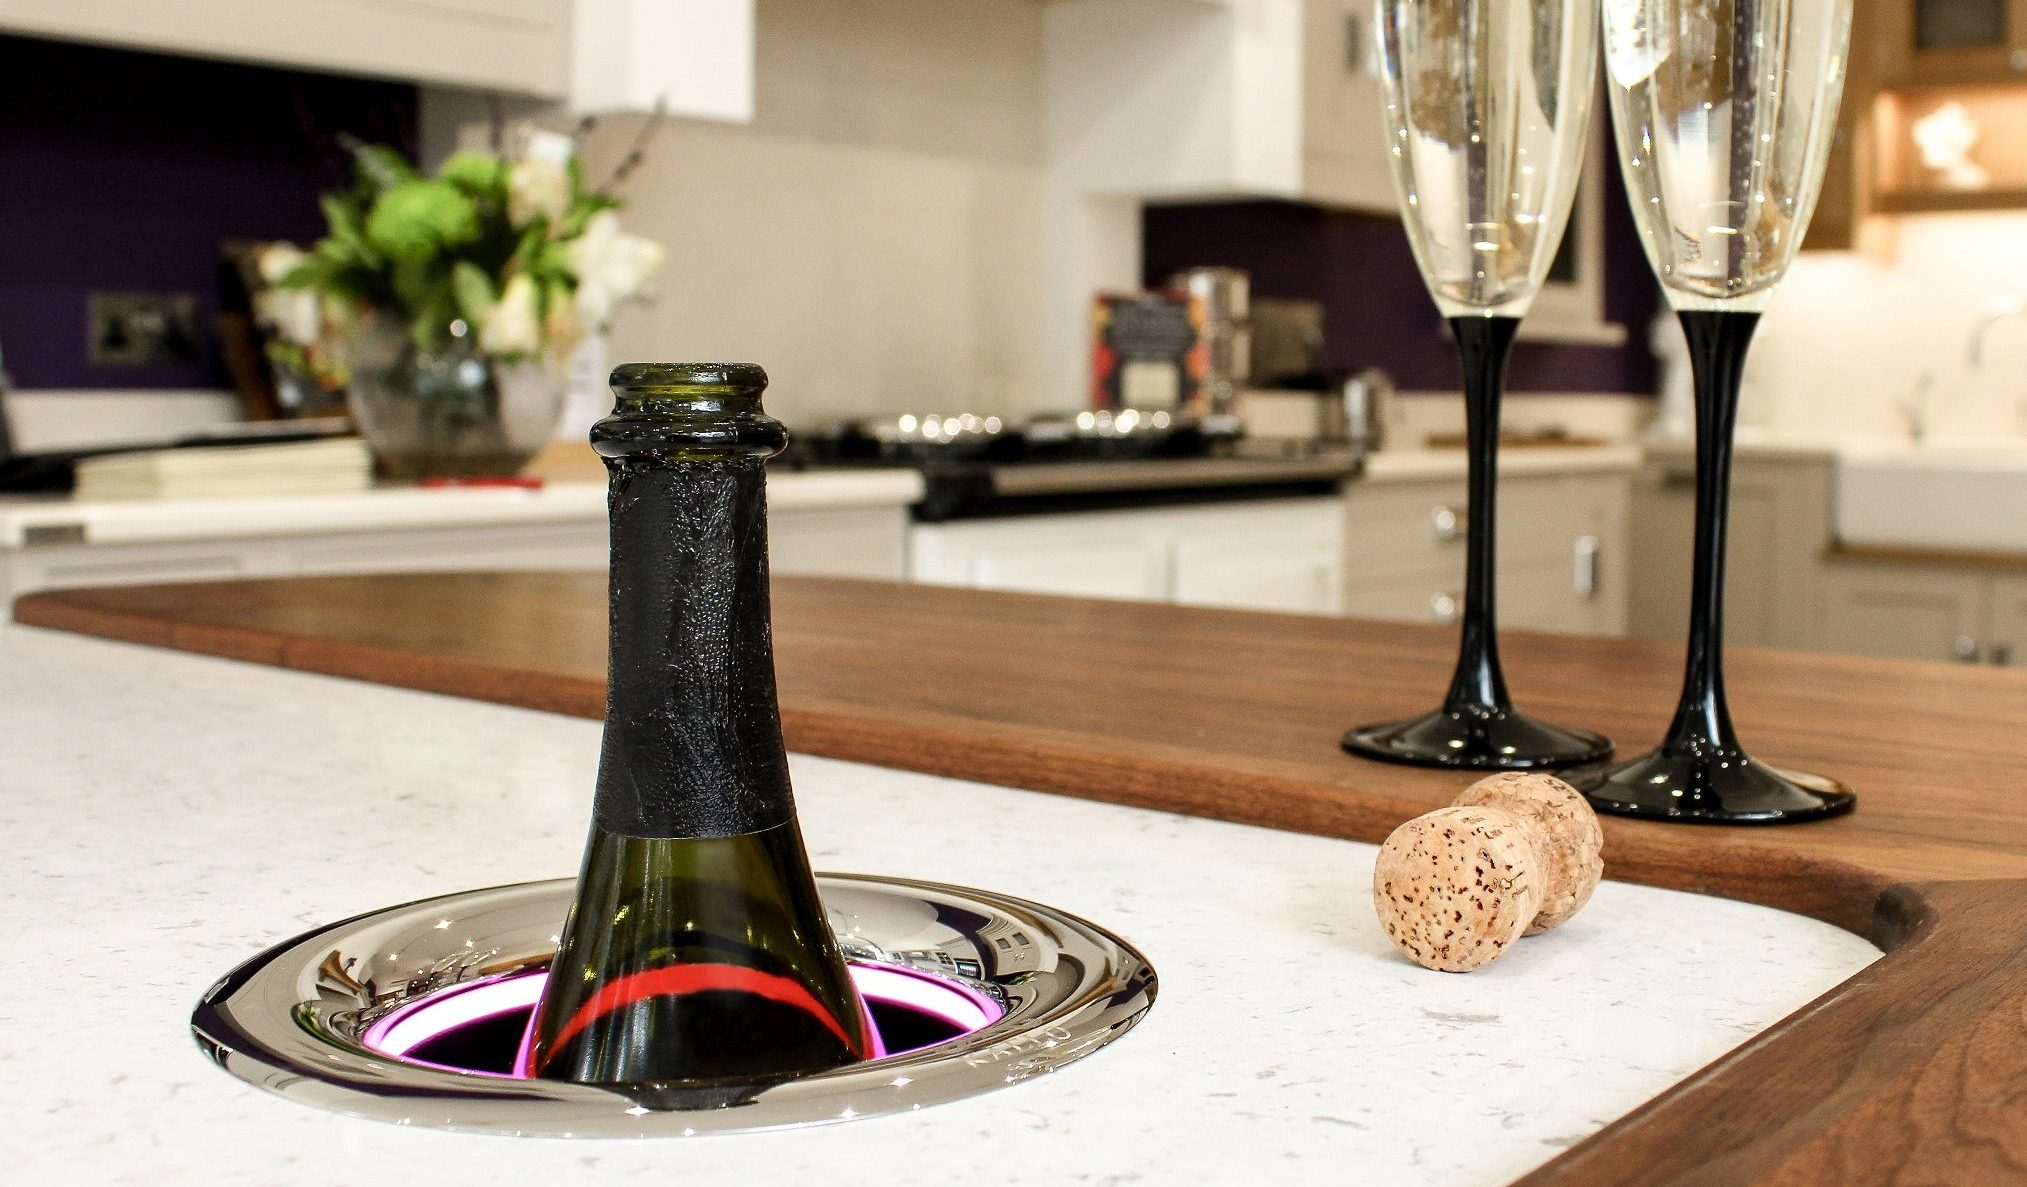 Kaelo wine cooler in a kitchen